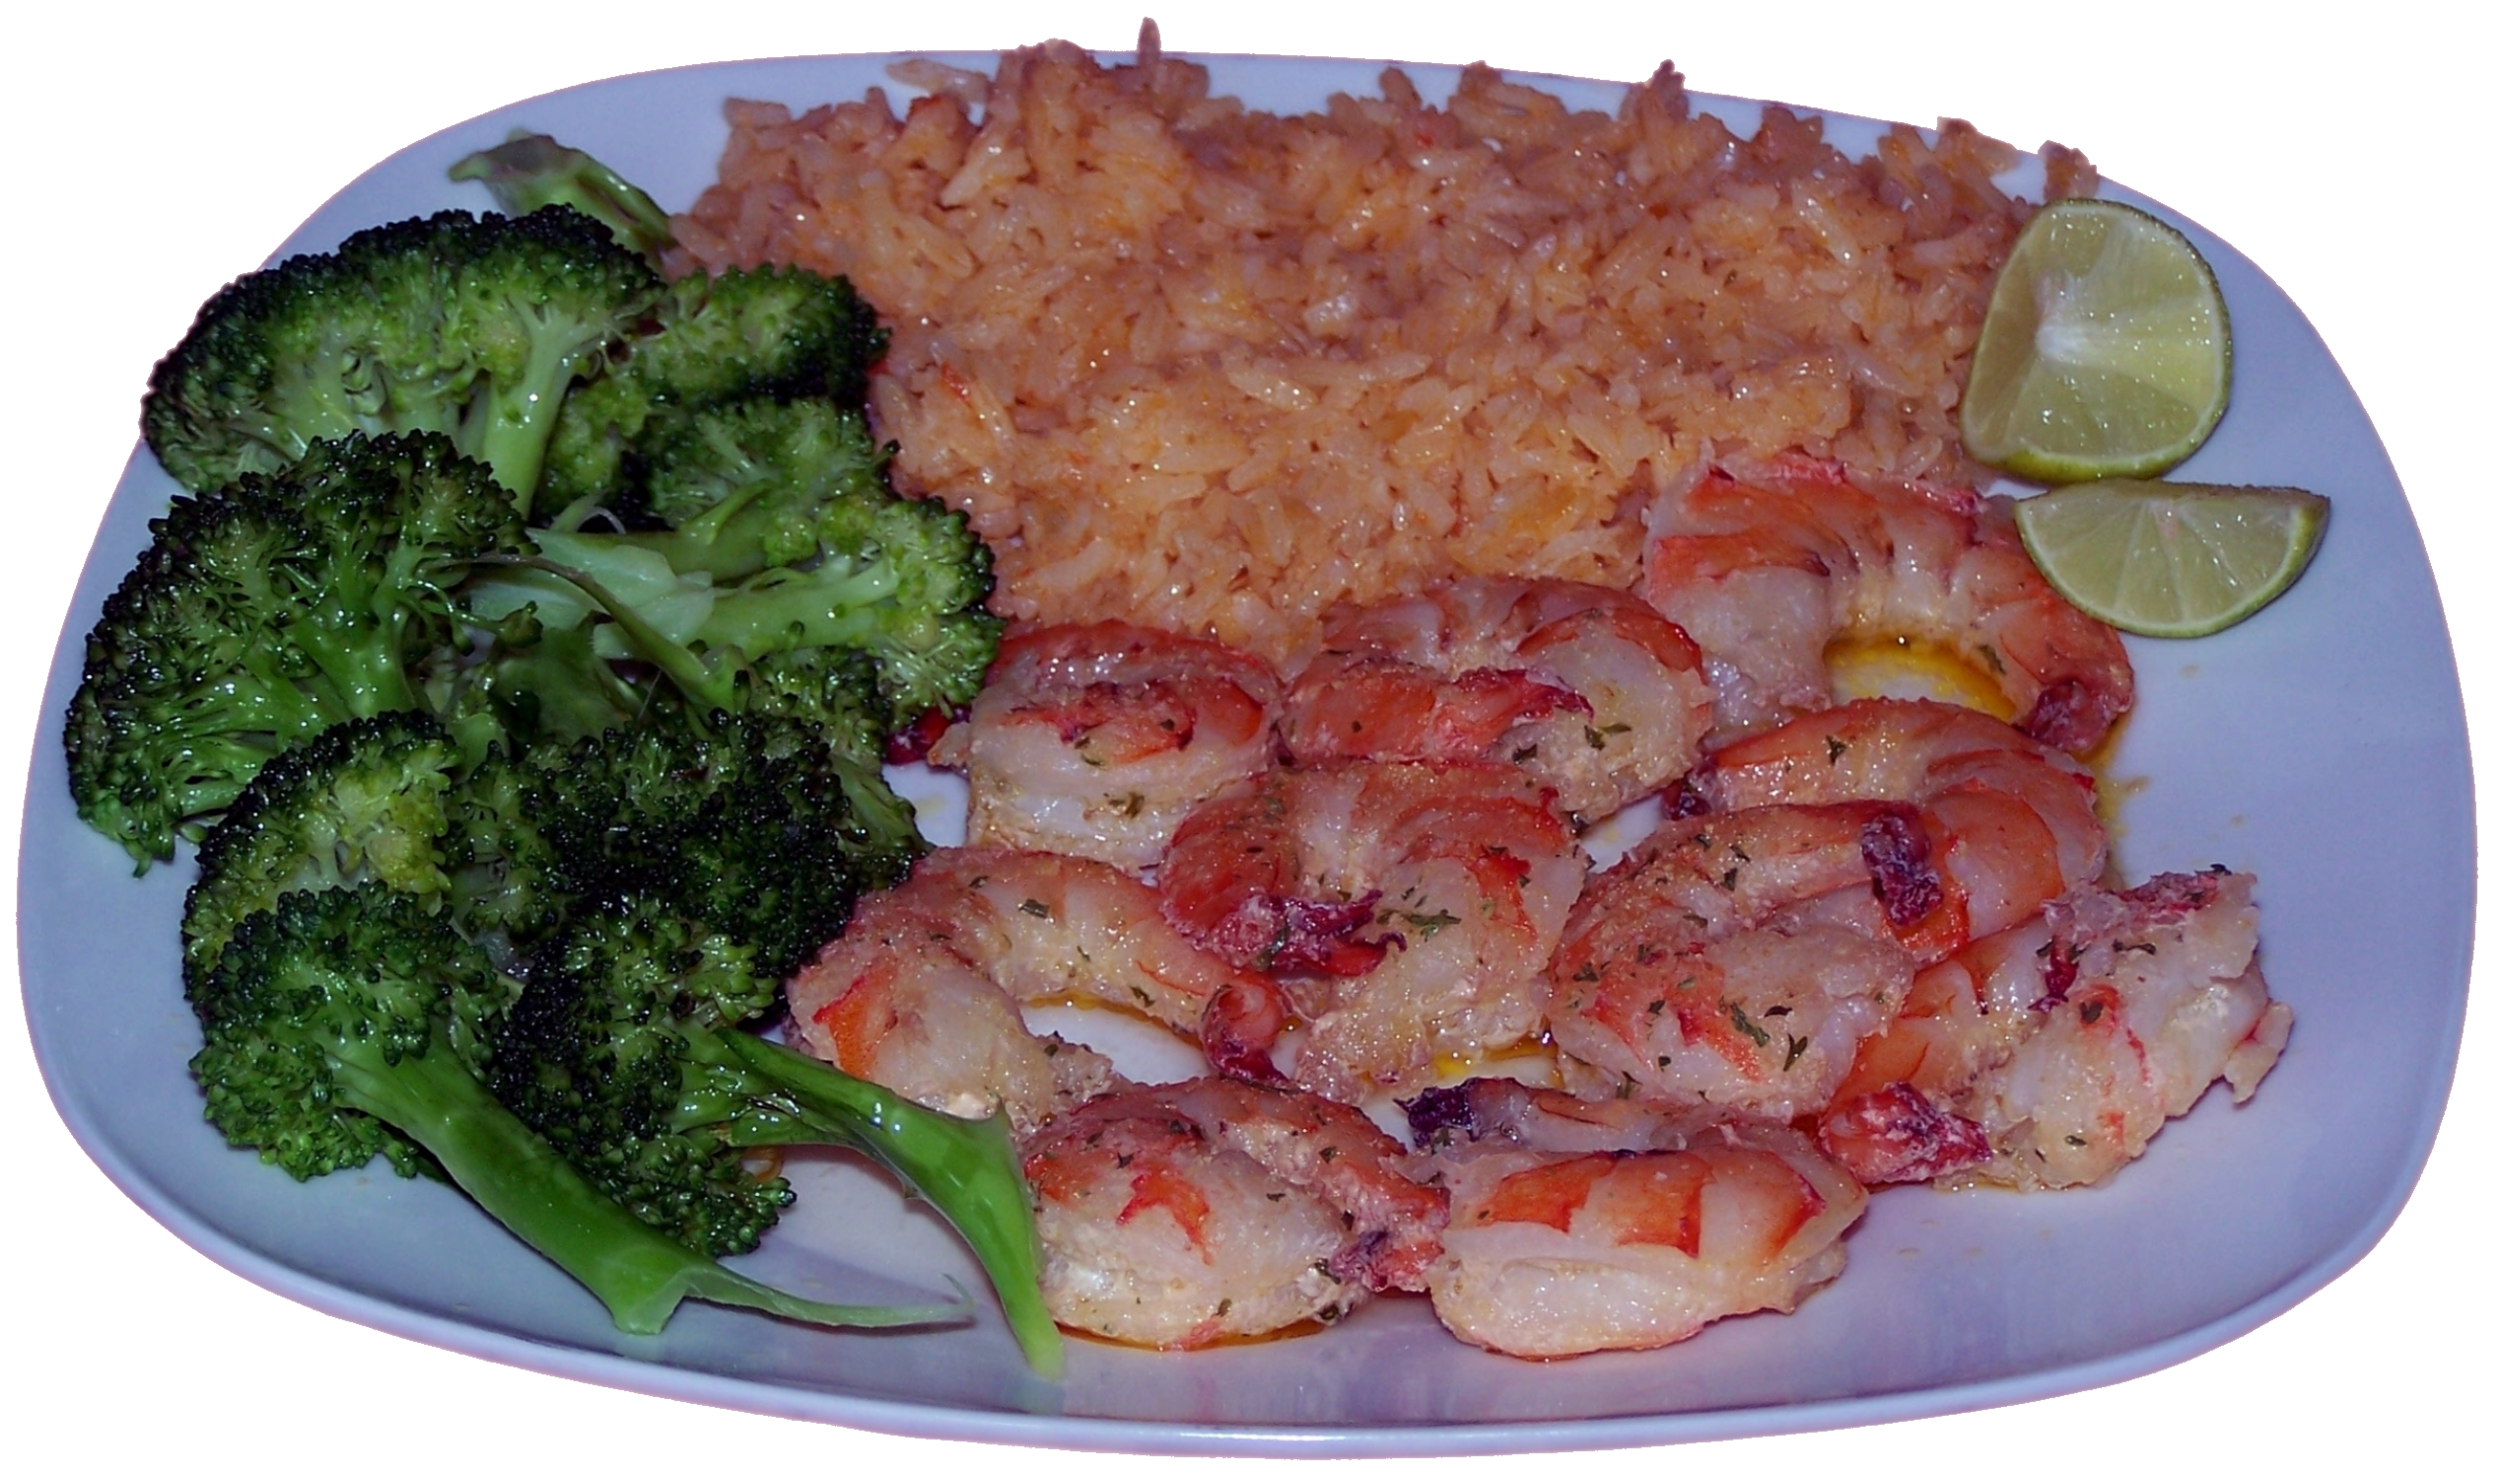 Garlic Shrimp  Shrimp sauteed in butter with hints of garlic and parsley. $18.99